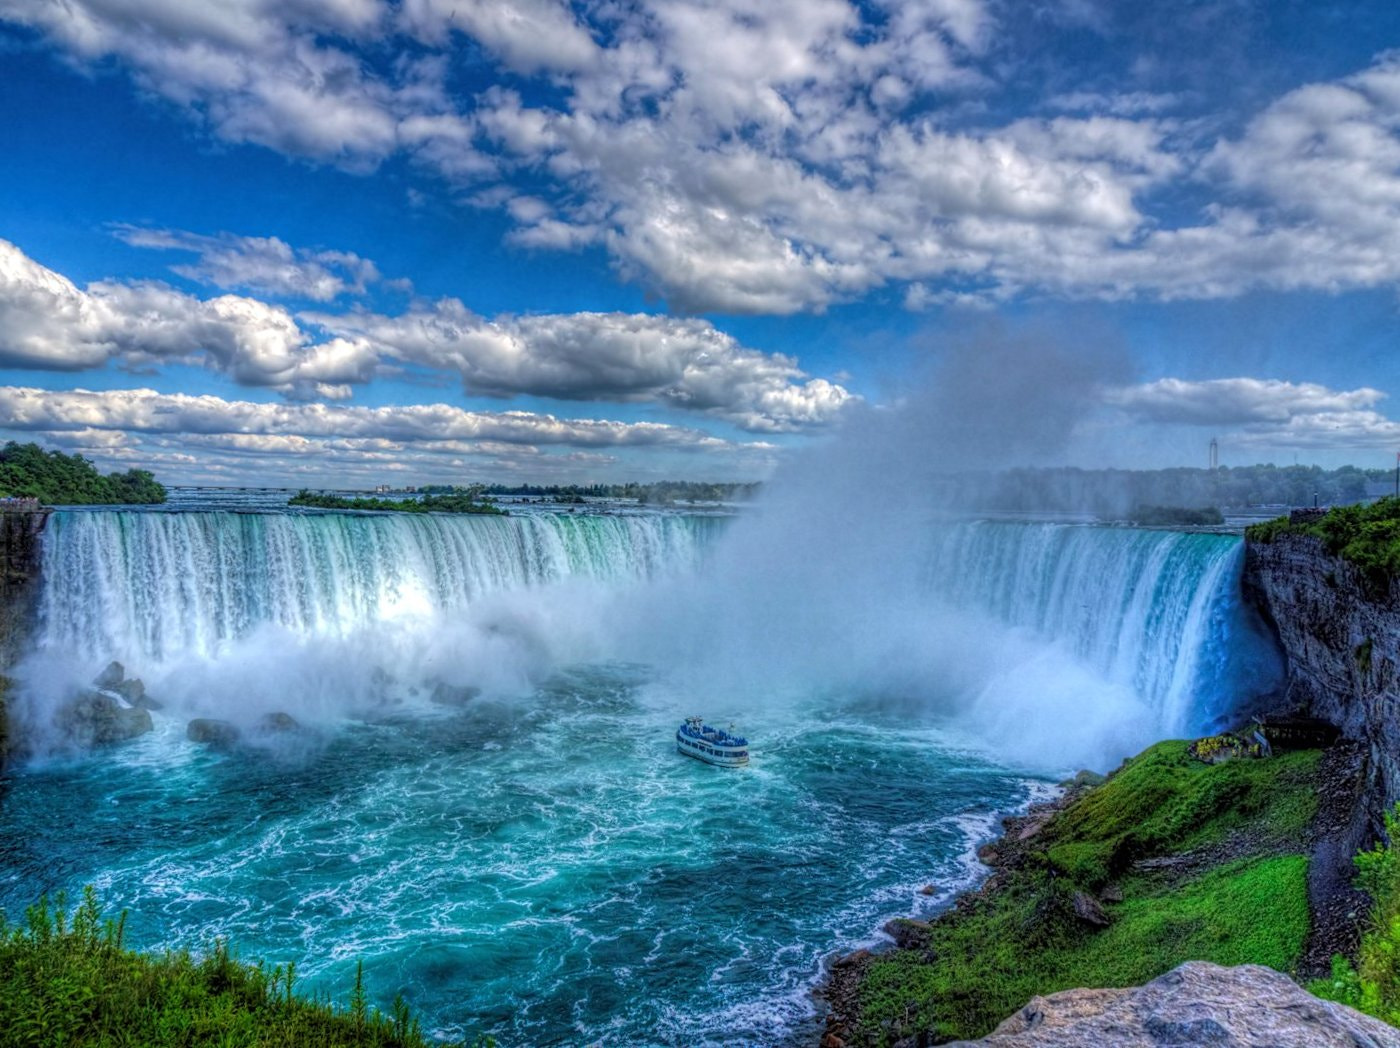 Photograph Canadian Falls by Grant MacDonald on 500px